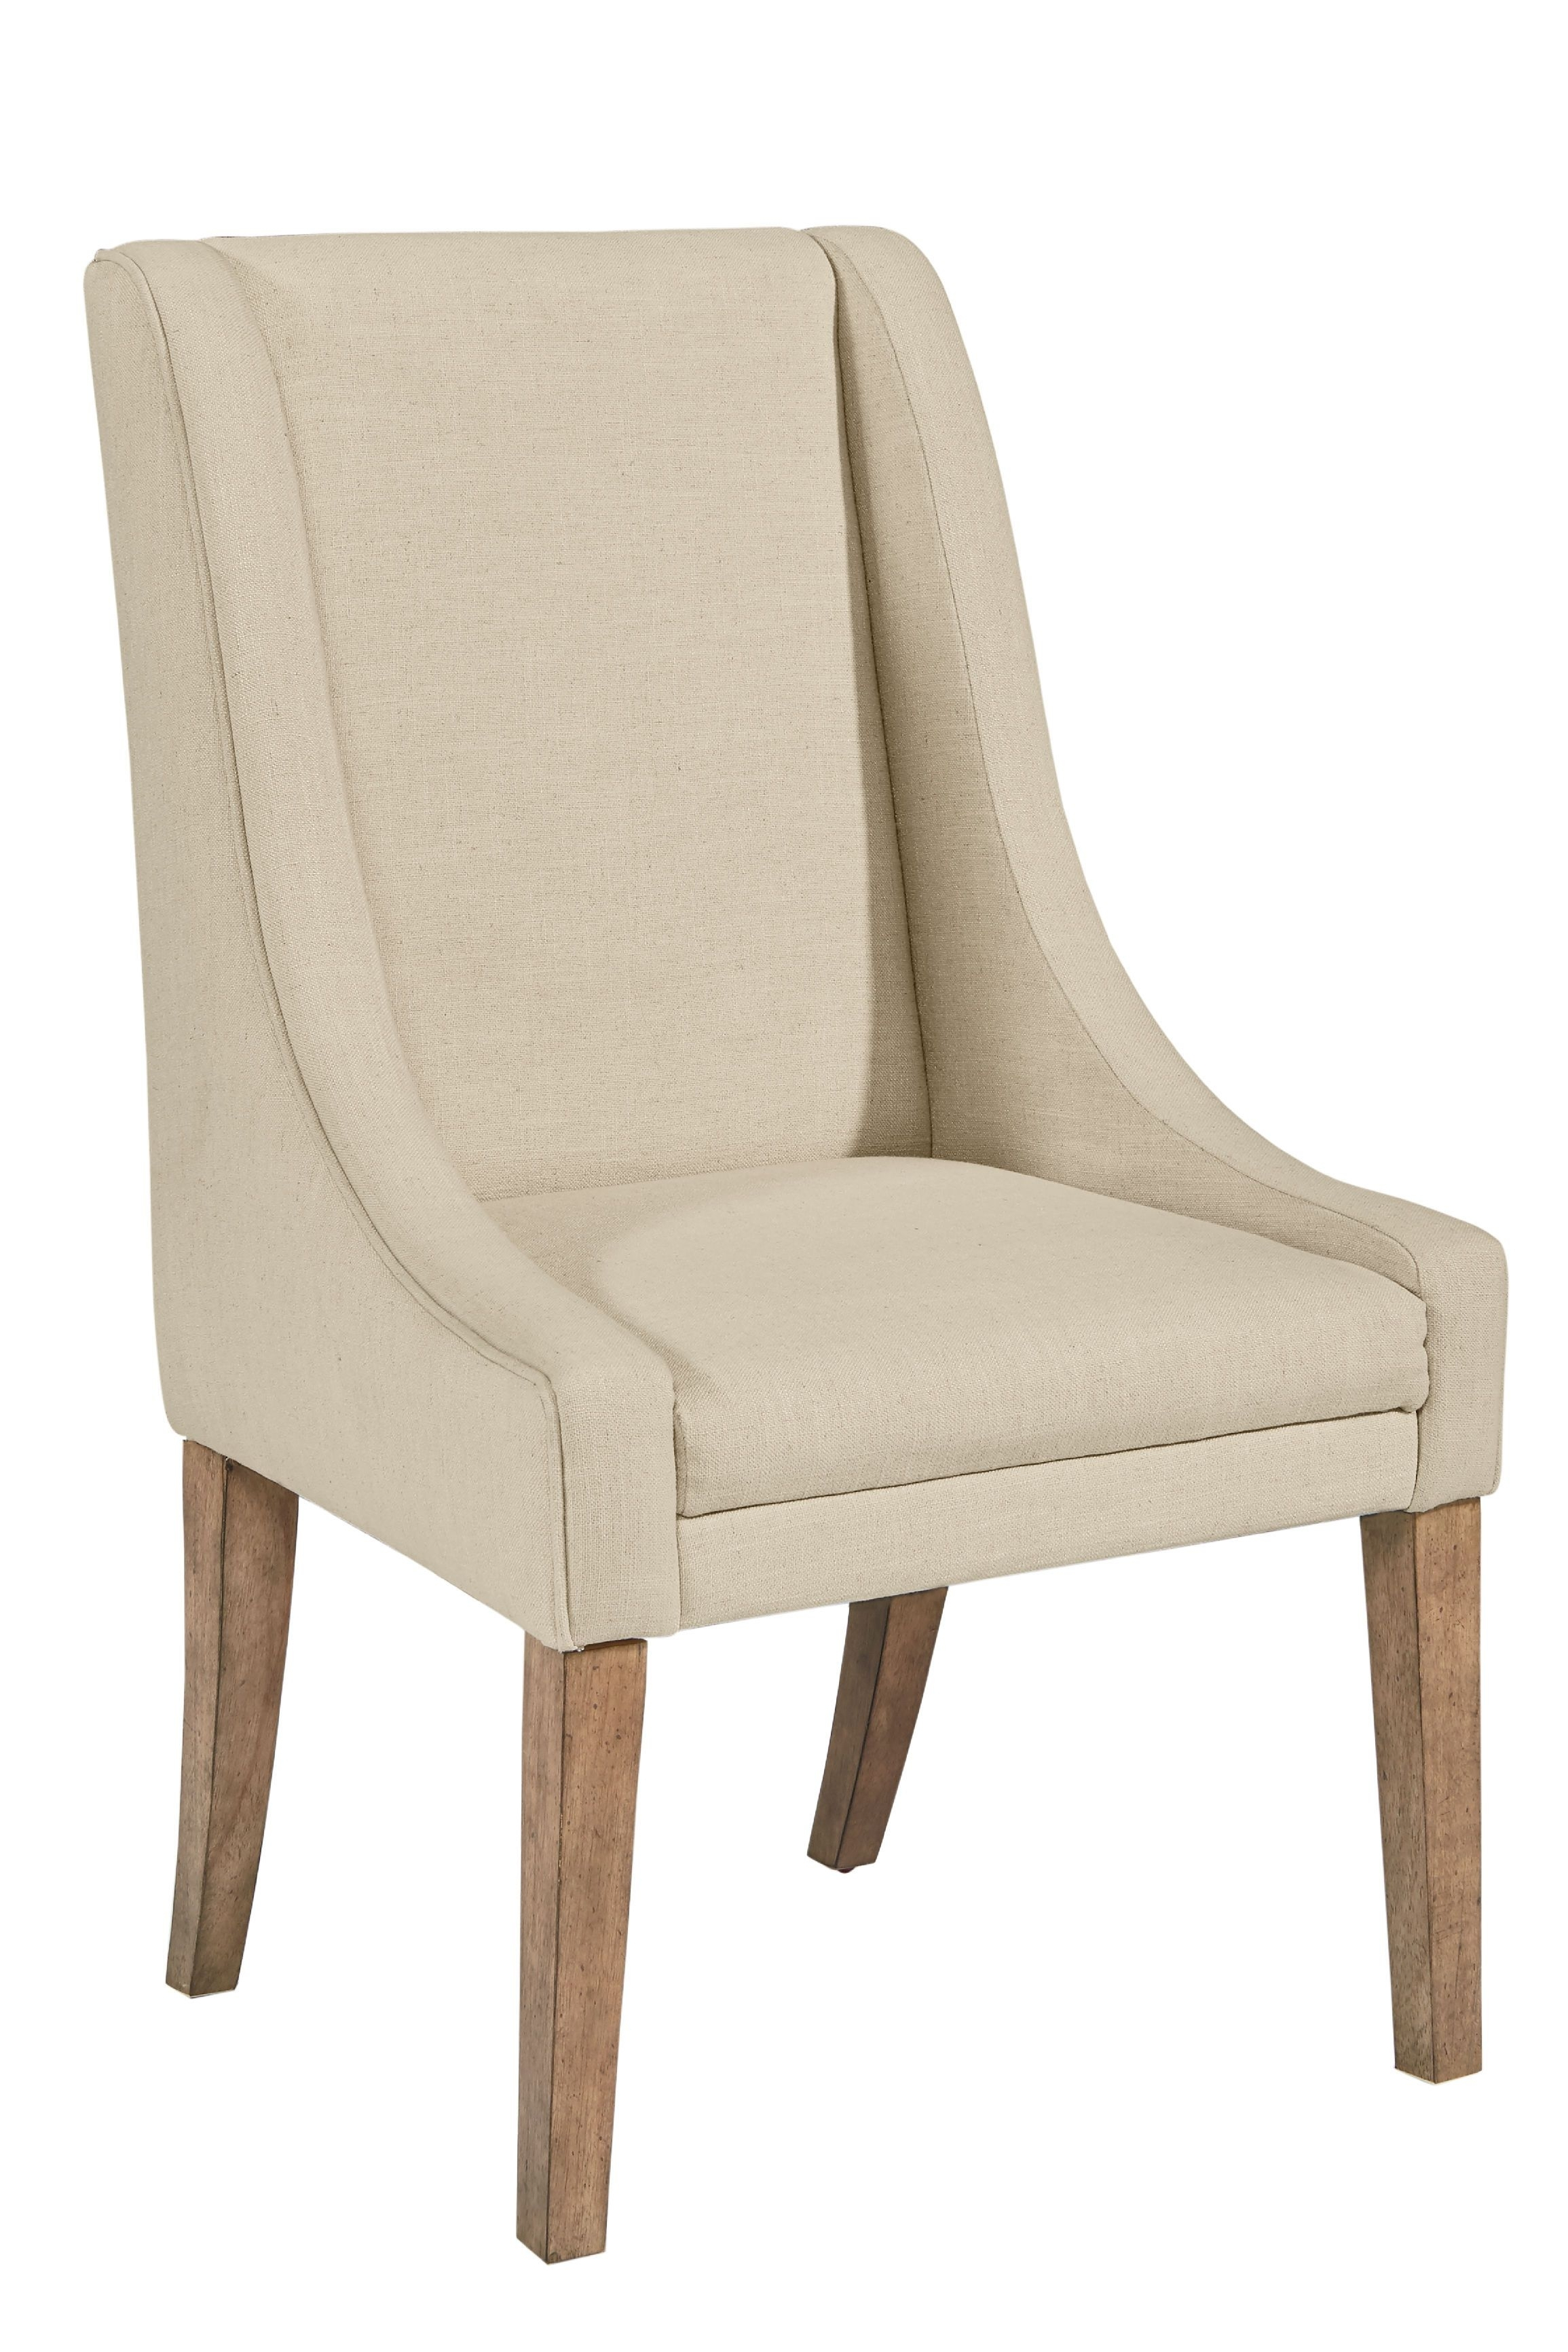 Inspiration about Well Known This Comfortable Upholstered Demi Wing Side Chair From Magnolia For Magnolia Home Contour Milk Crate Side Chairs (#10 of 20)